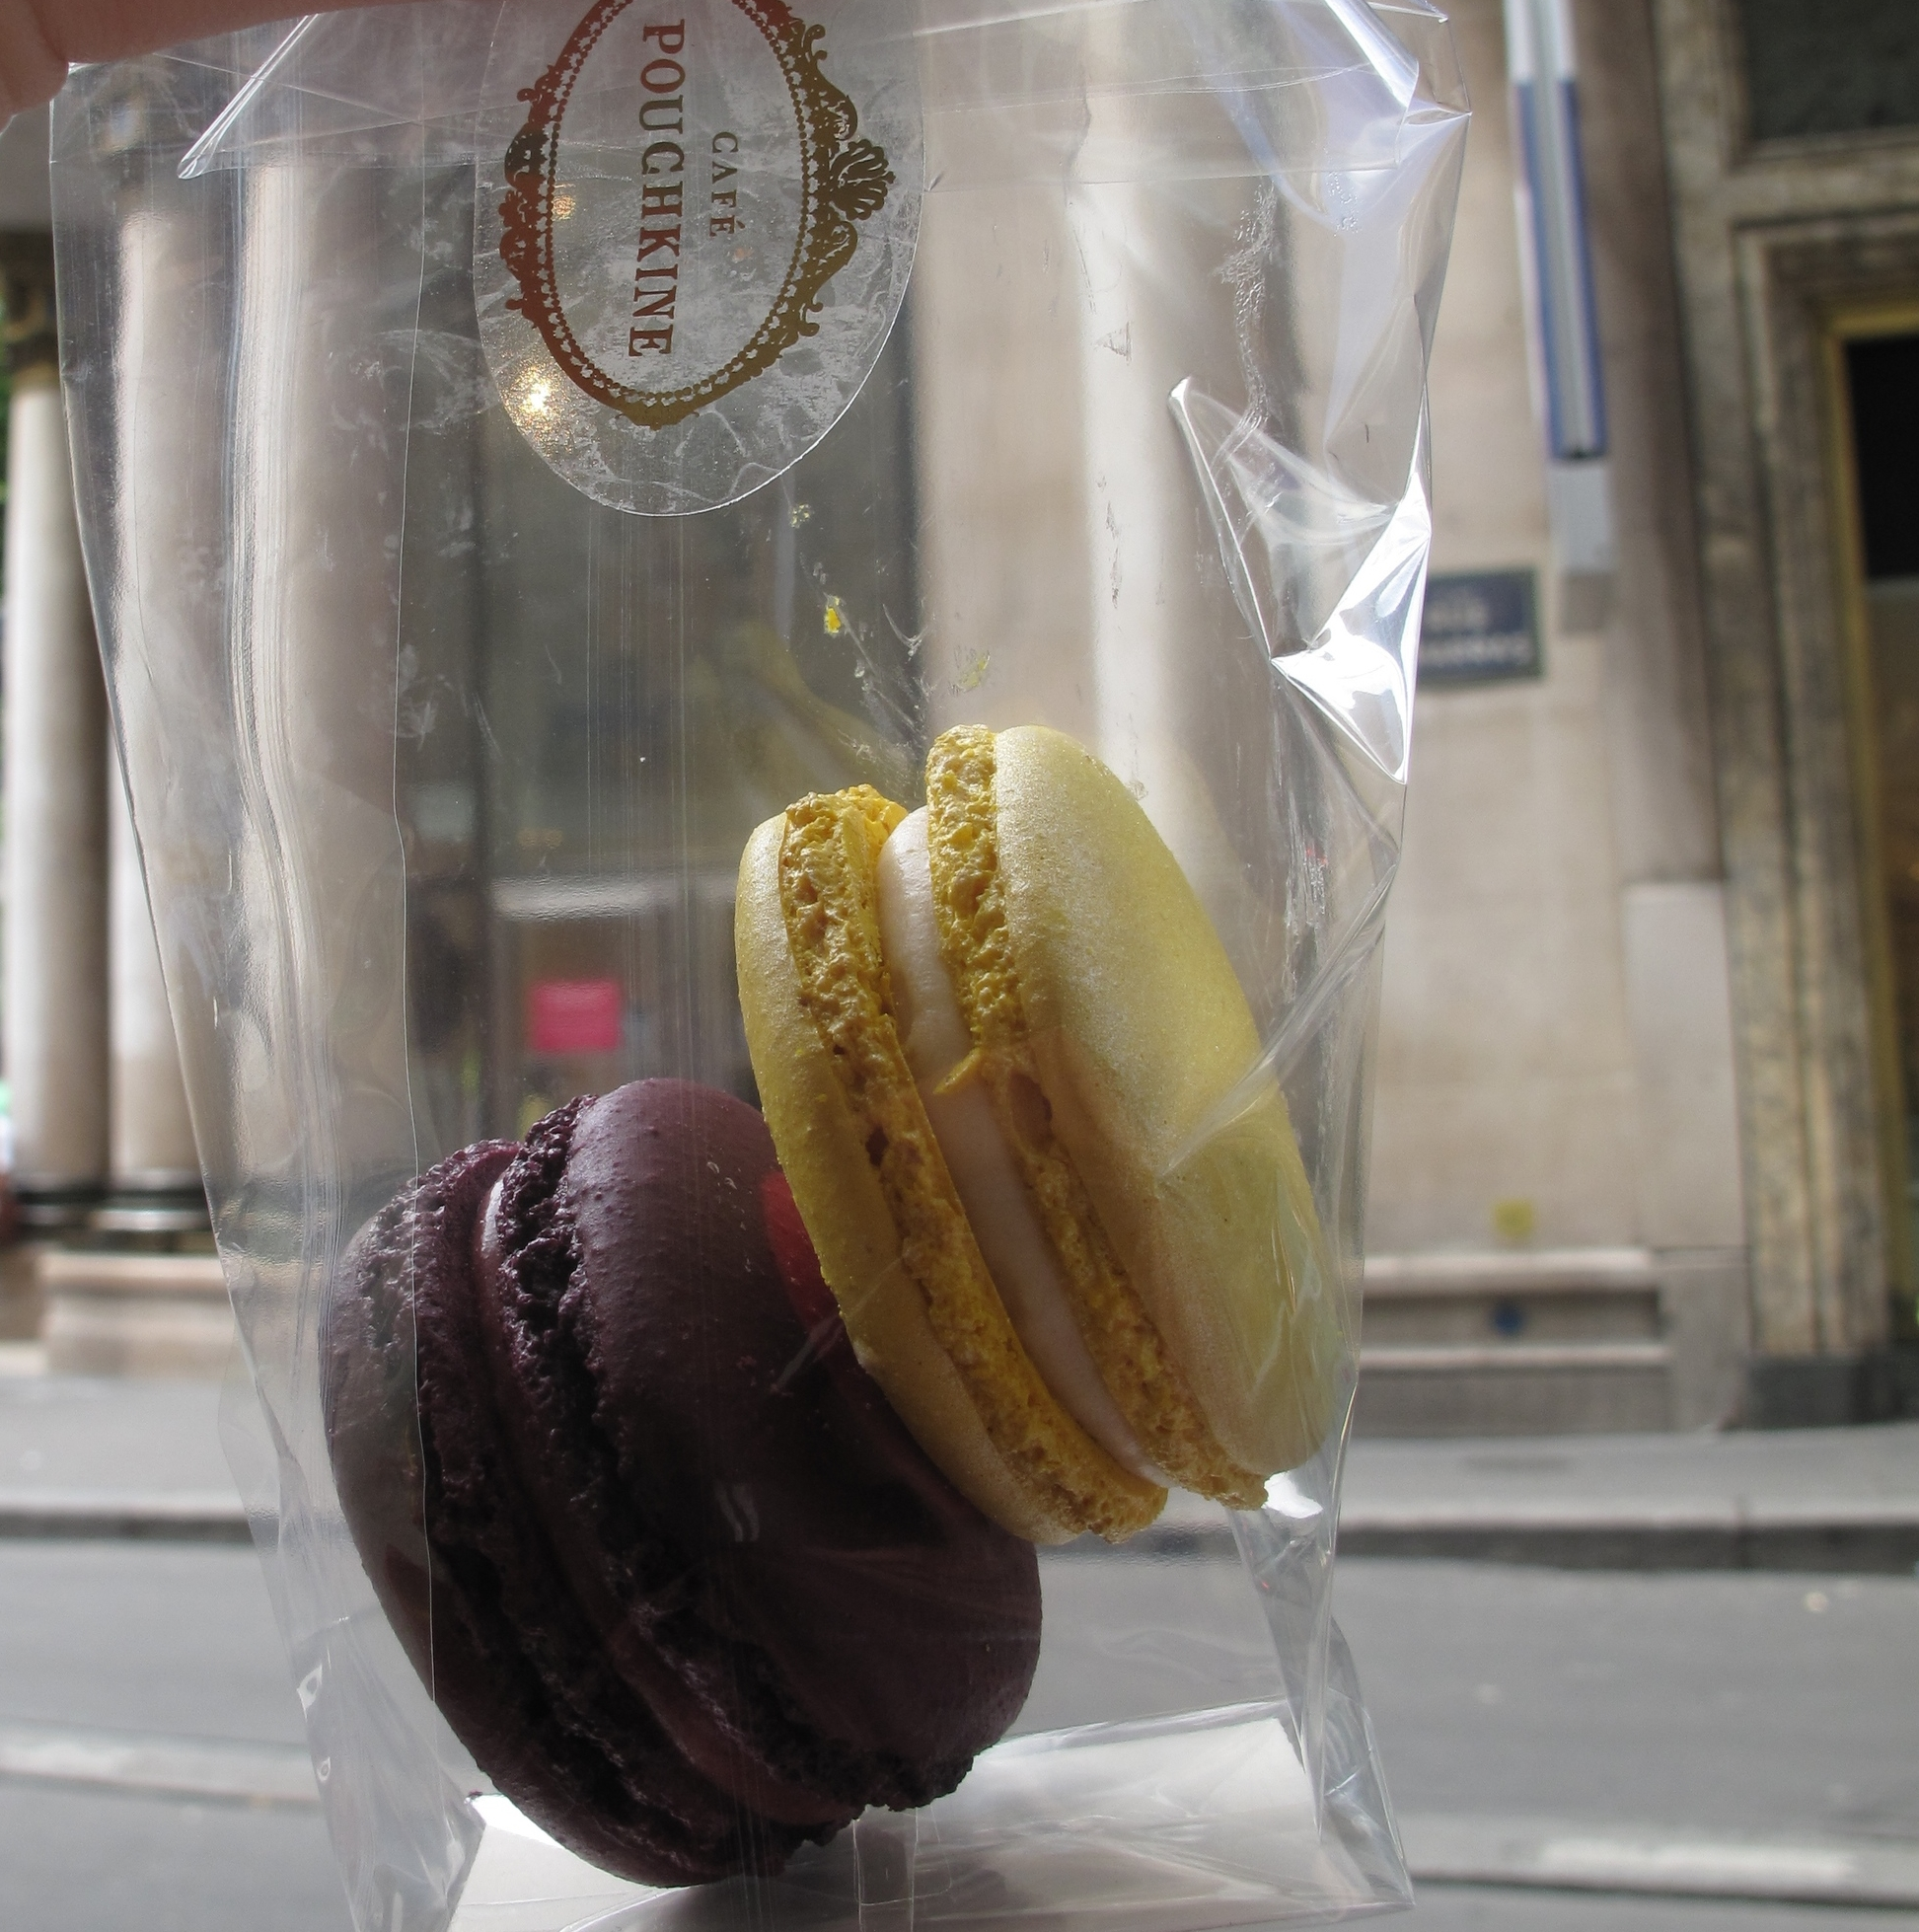 Macarons from café Pouchkine, Paris